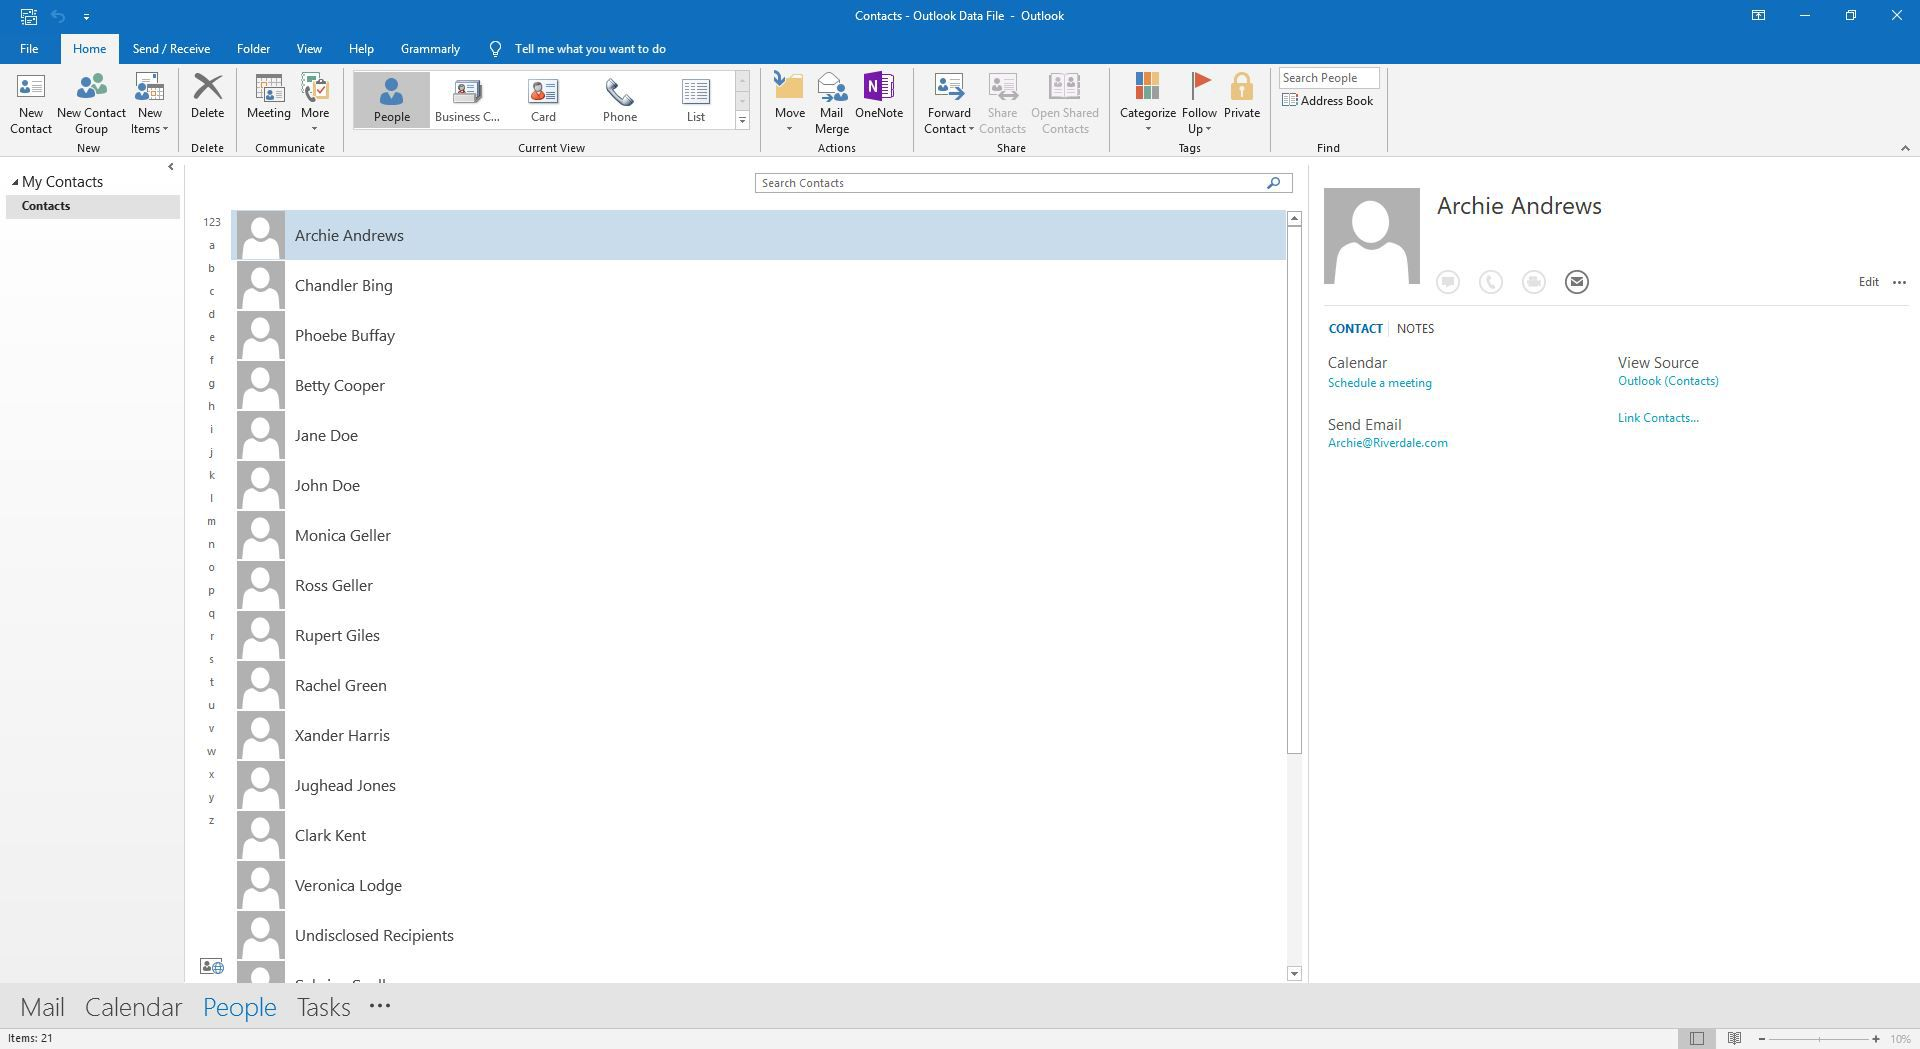 Outlook Contacts listed